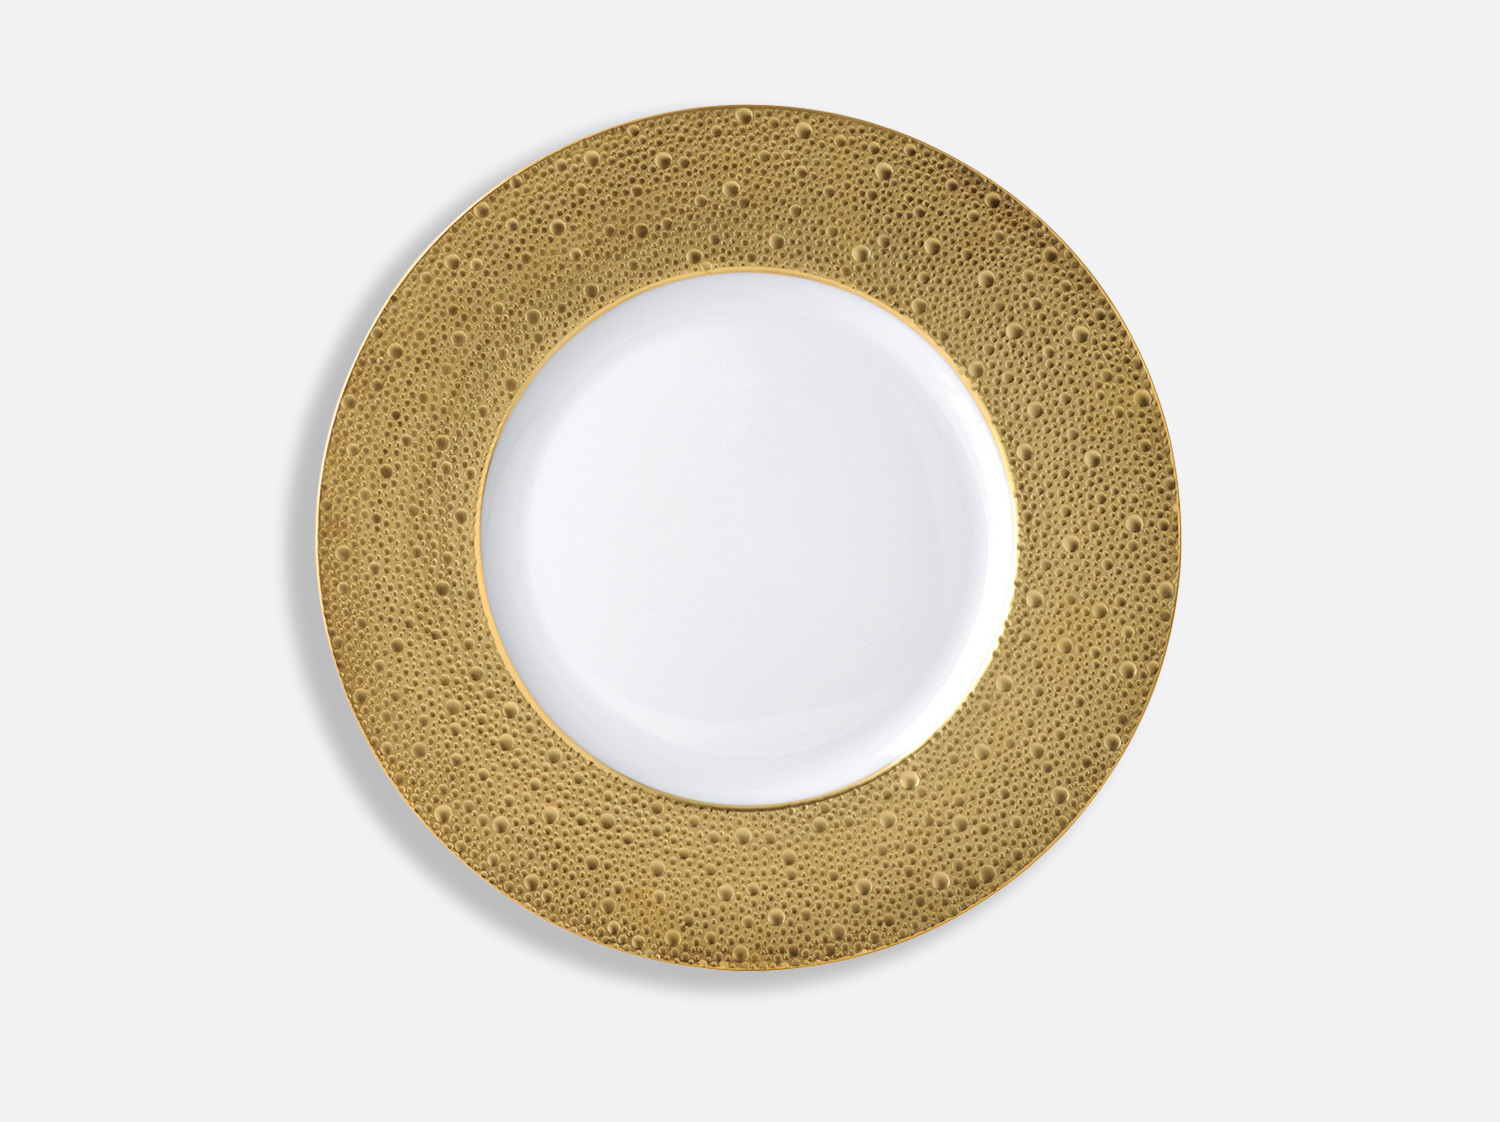 China Plate 29.5 cm of the collection Ecume gold | Bernardaud